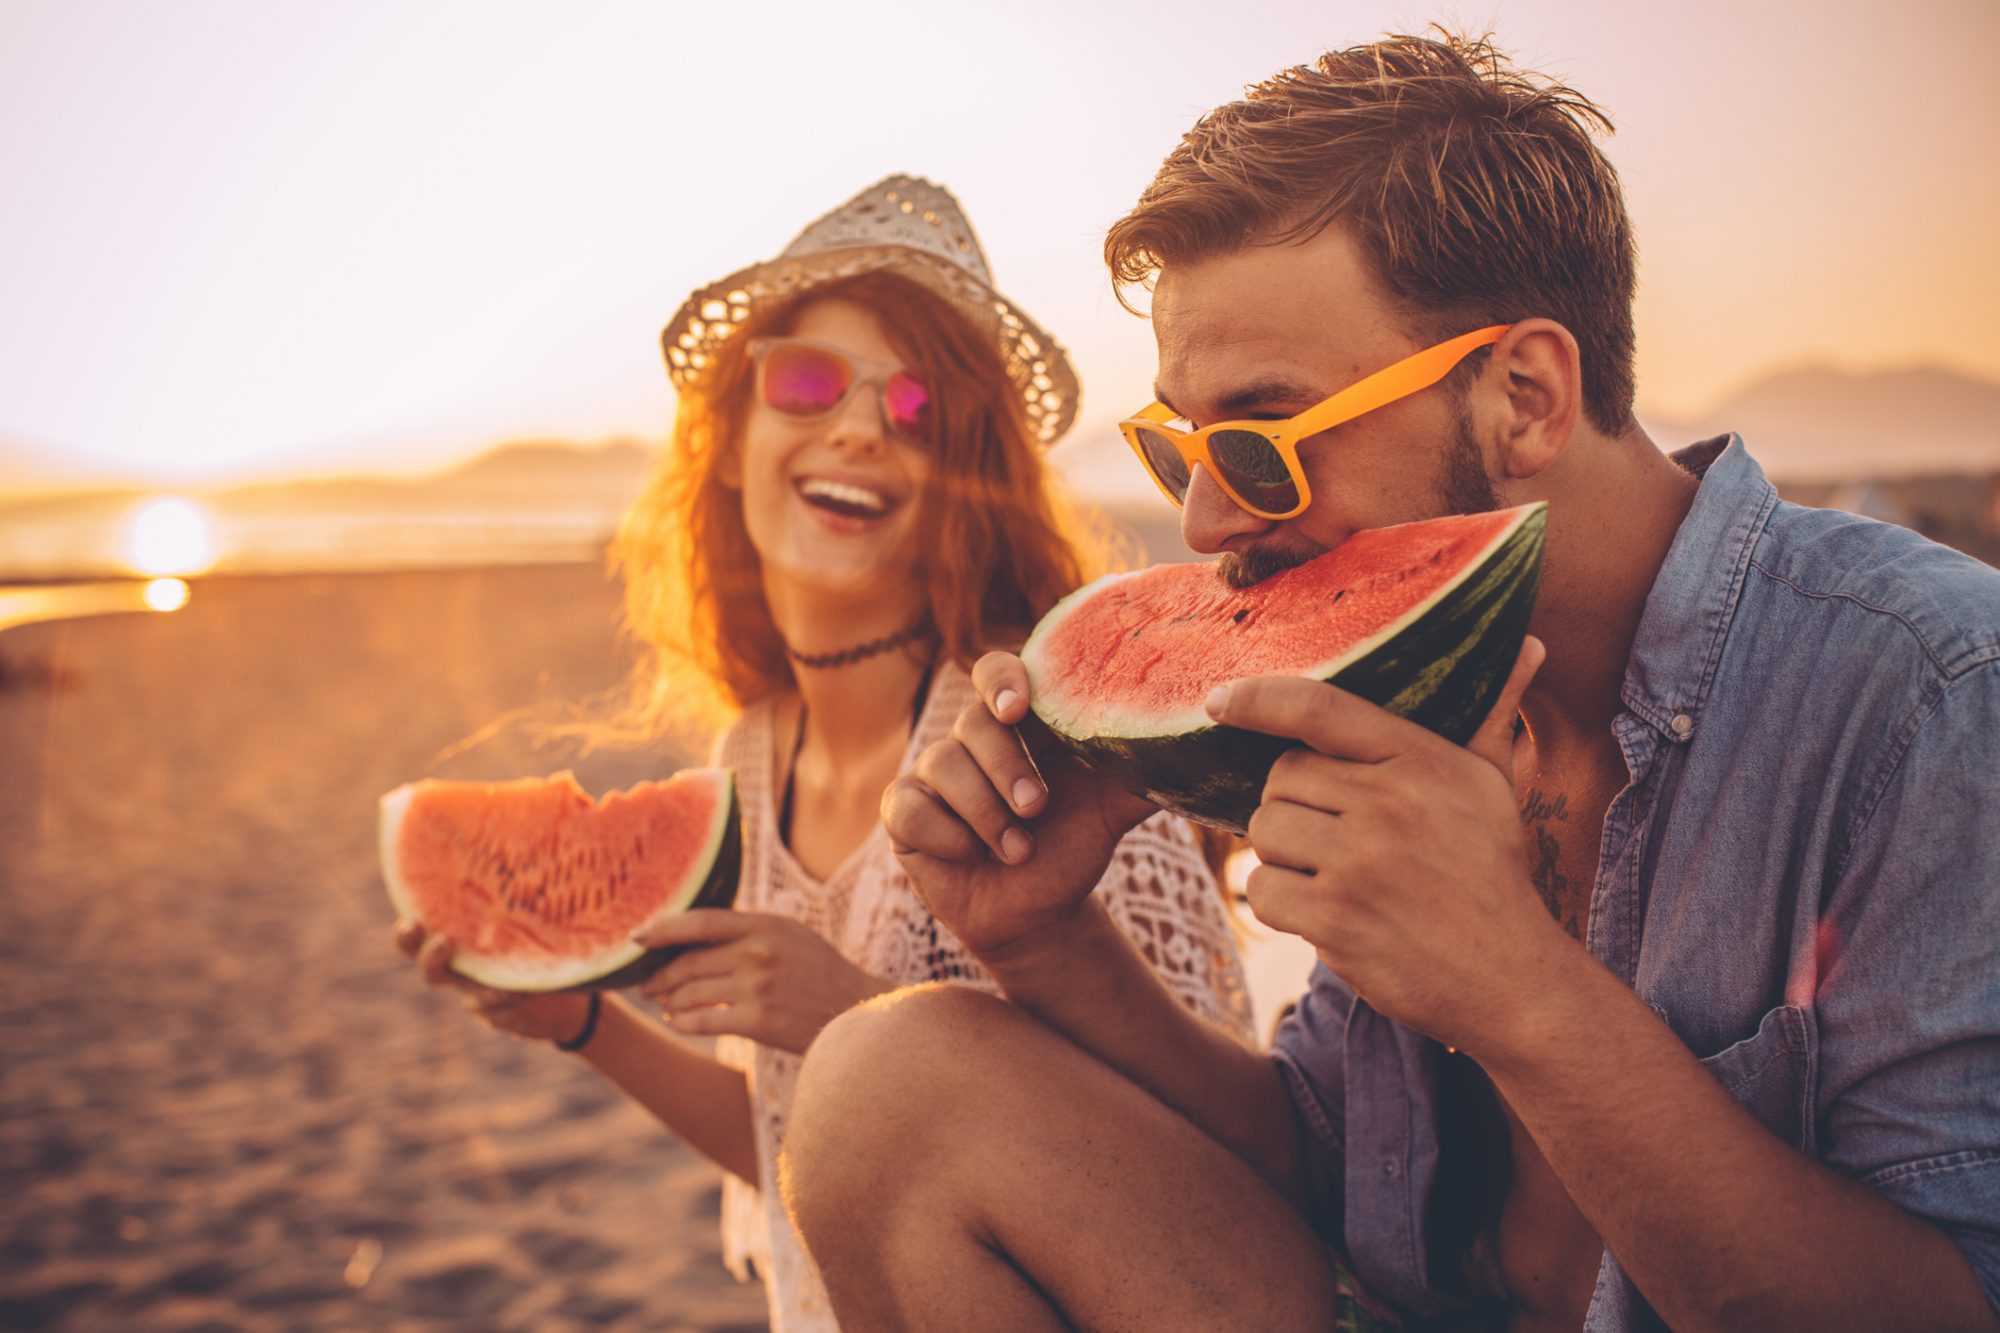 Couple eating watermelon, but is it better to eat candy when a sugar craving hits?